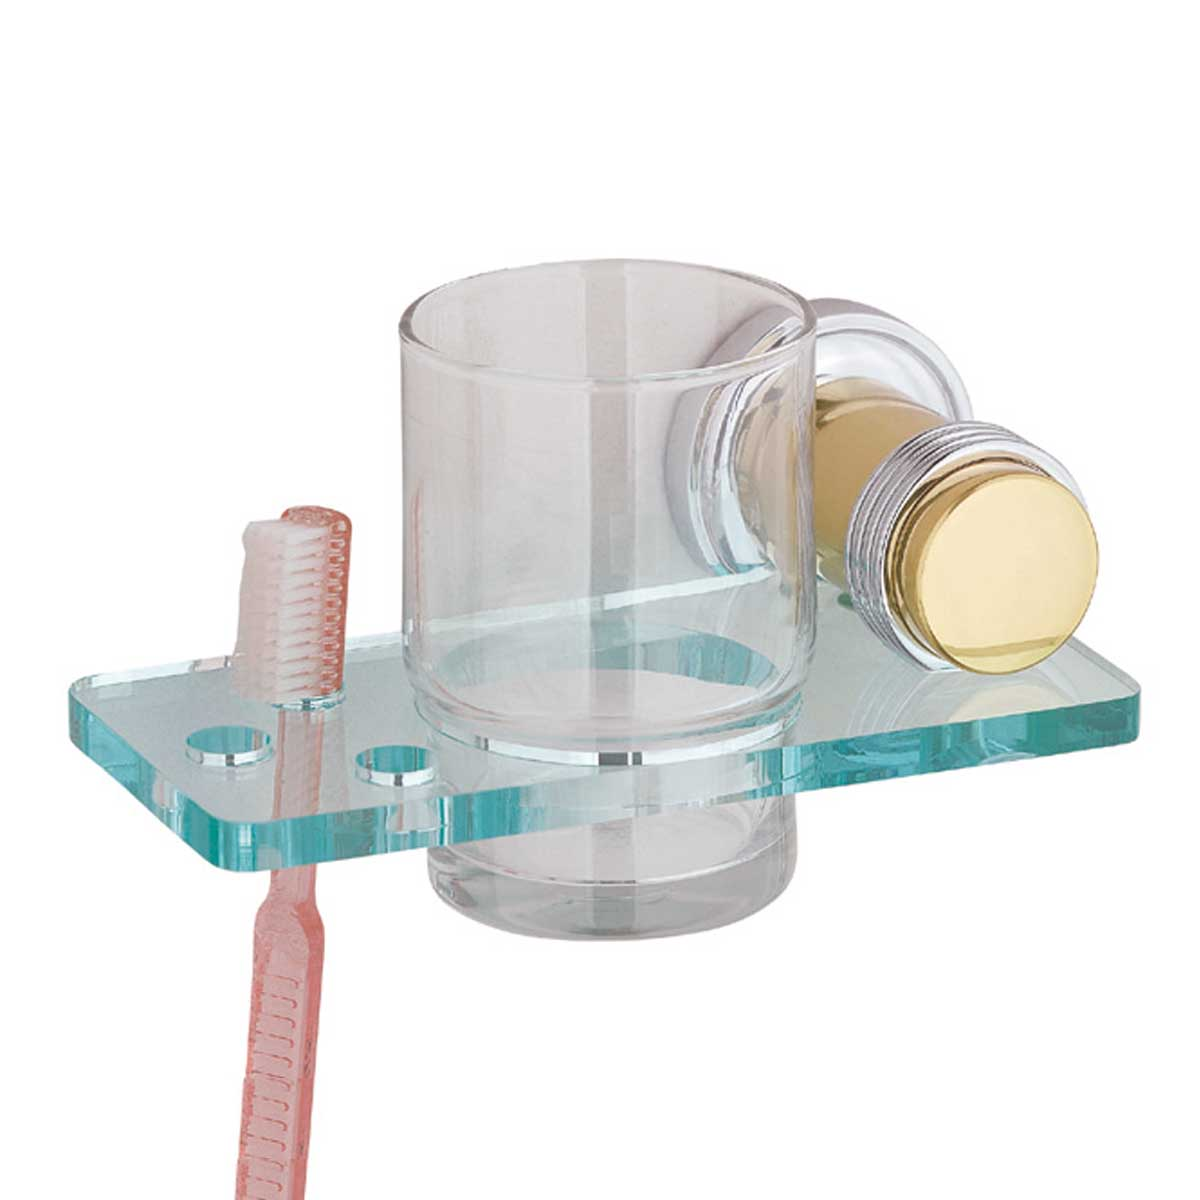 Glass Toothbrush Holder Victorian Spectrum Brass Bracket | Renovator's Supply